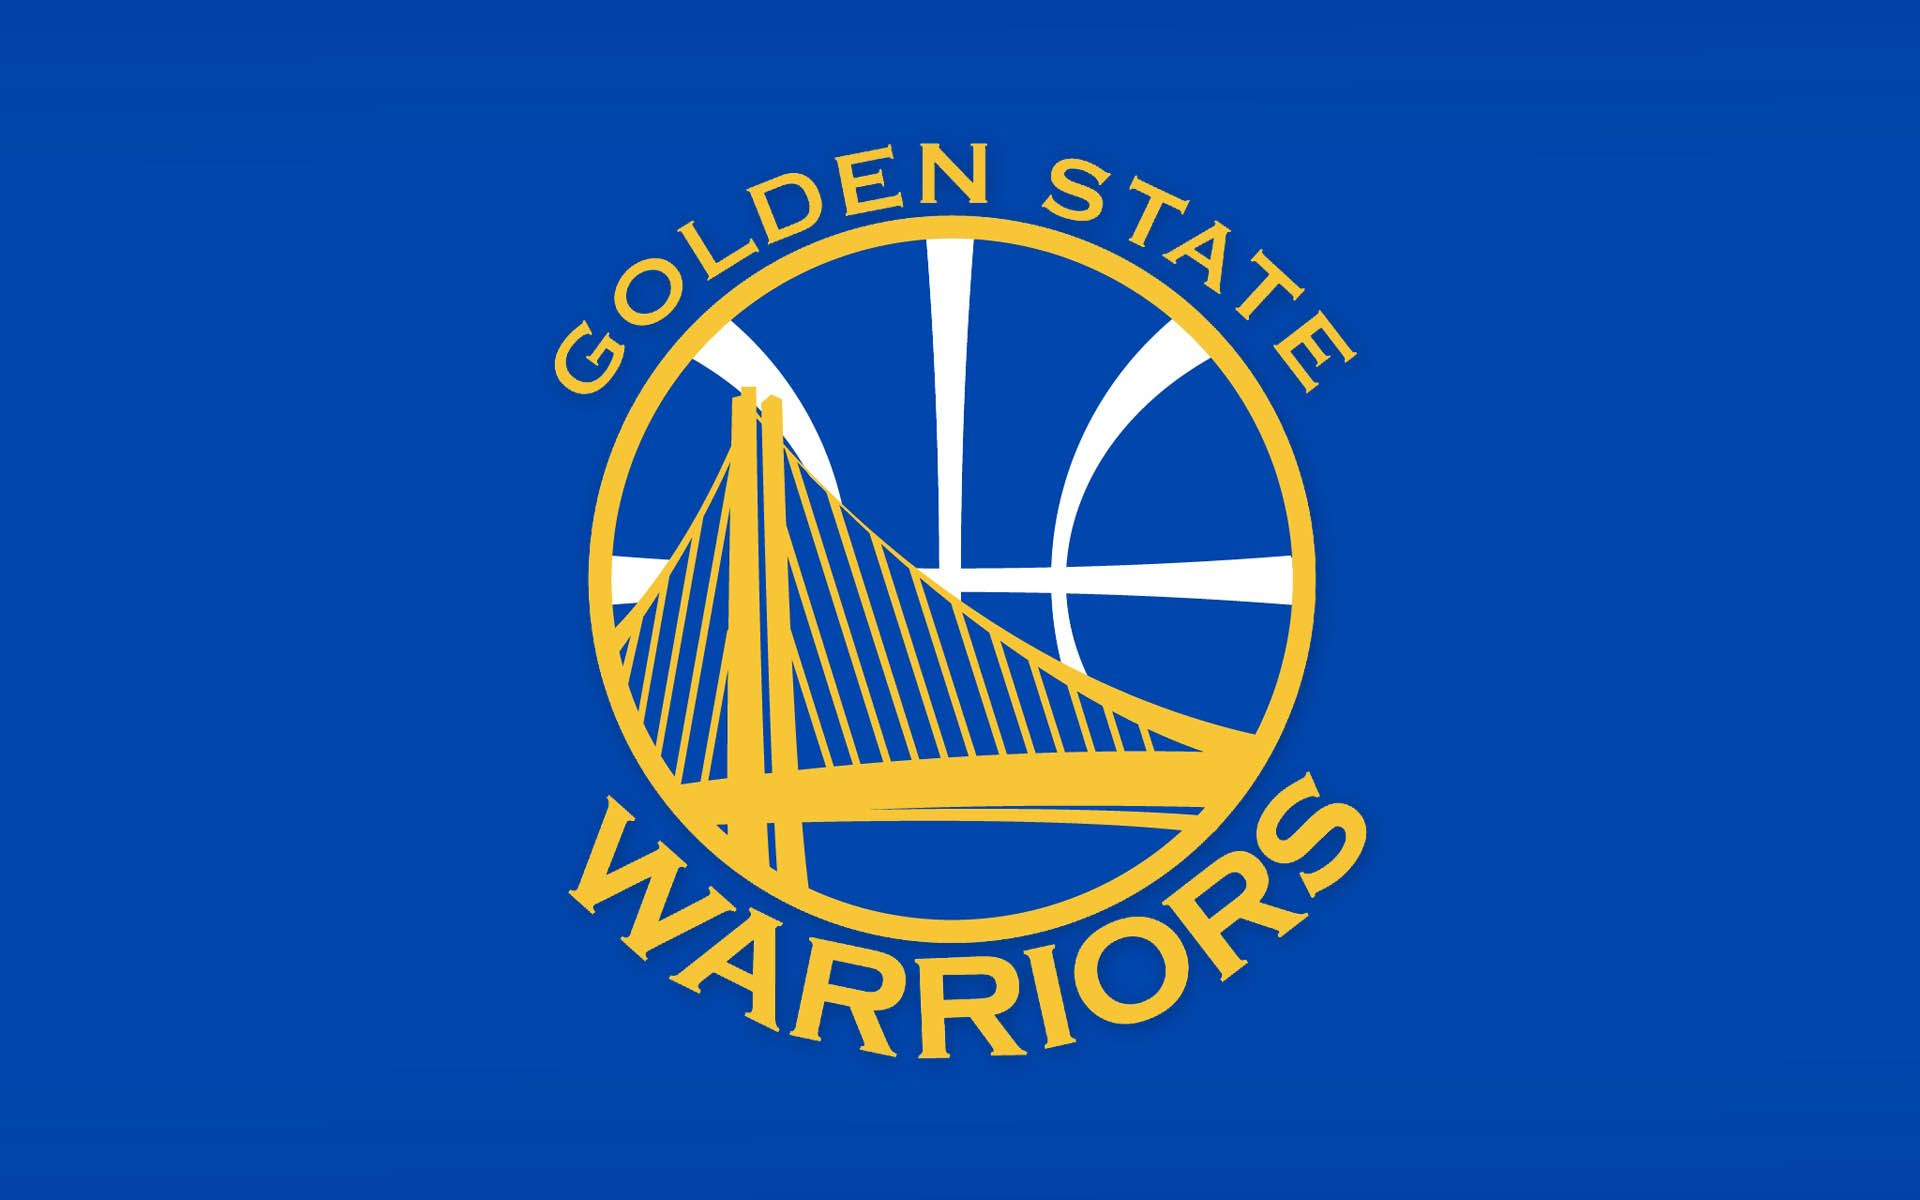 Golden State Warriors Wallpapers - Top